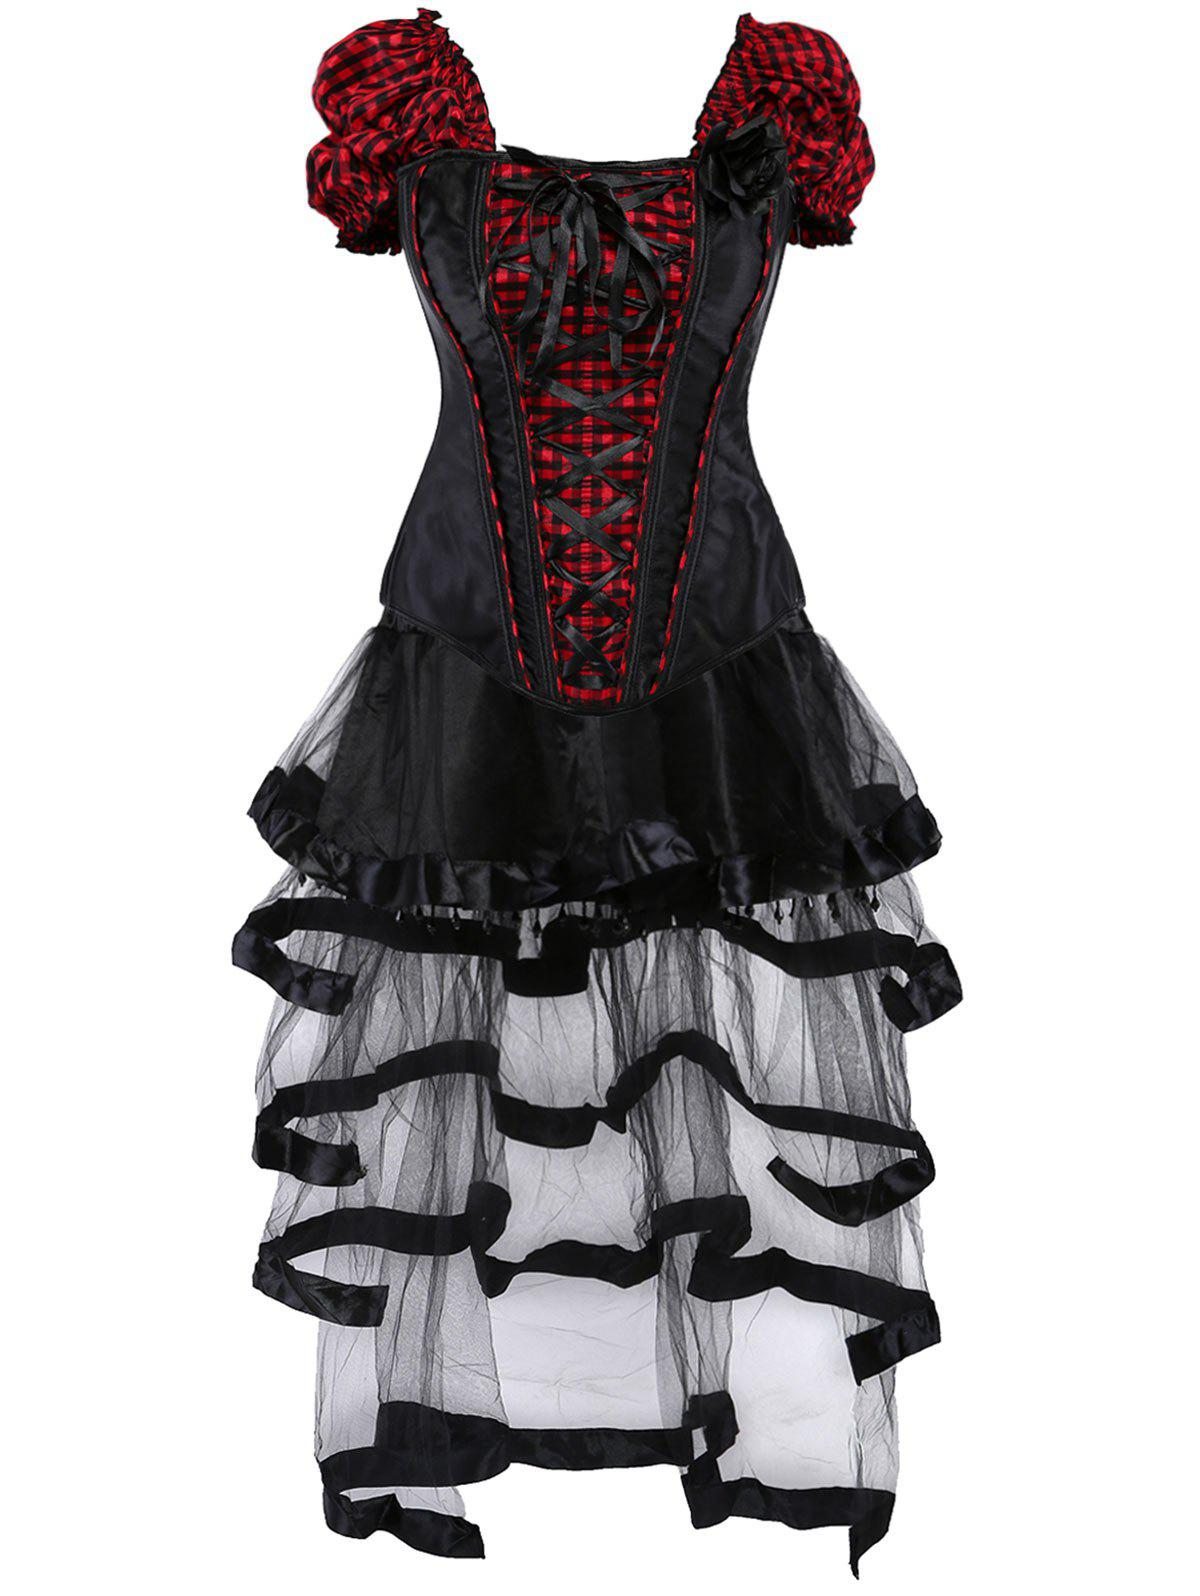 Gothic Checked Lace Up Corset with Sheer Skirt - RED/BLACK M